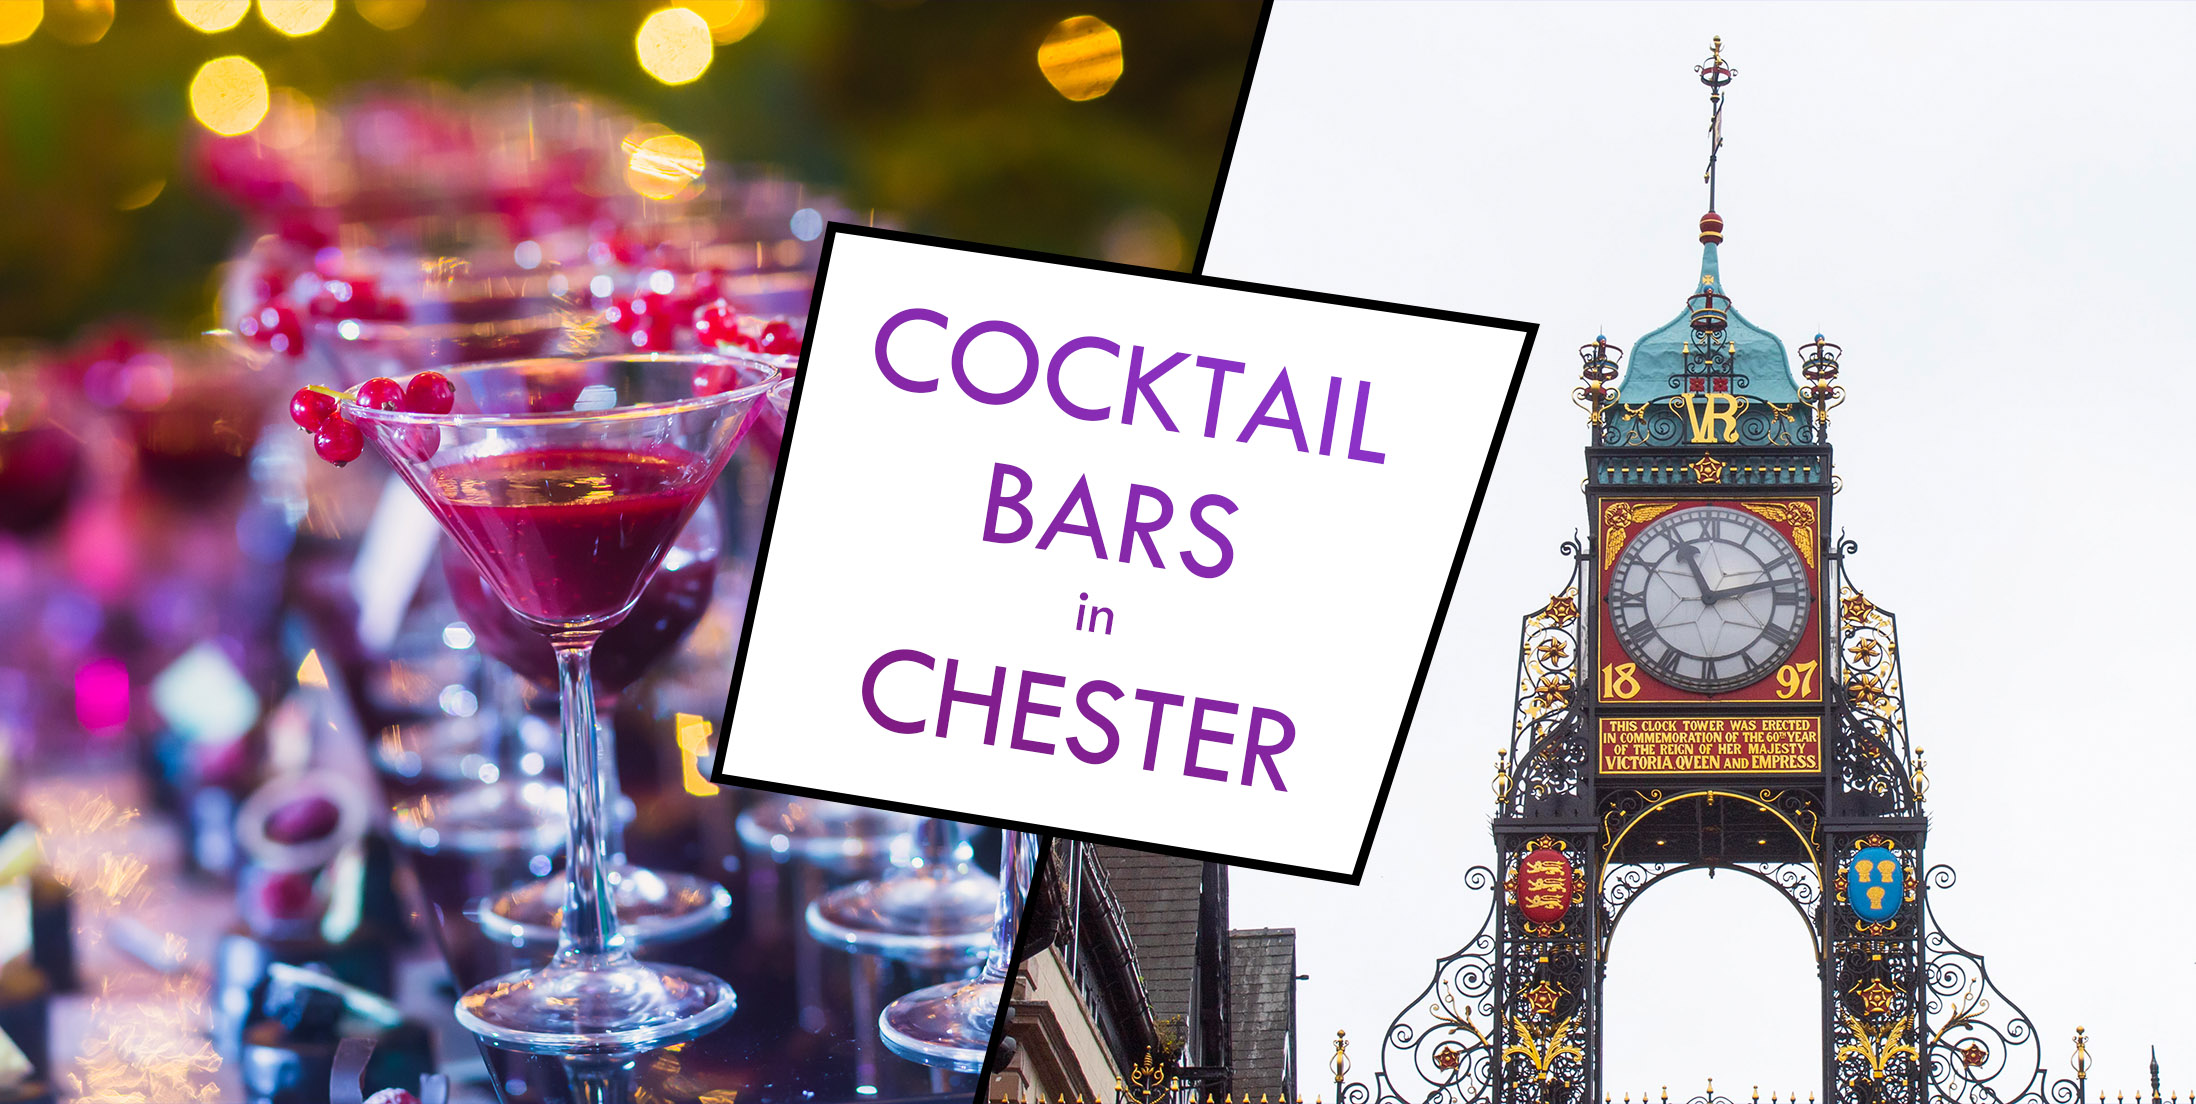 Cocktail Bars in Chester (Banner)